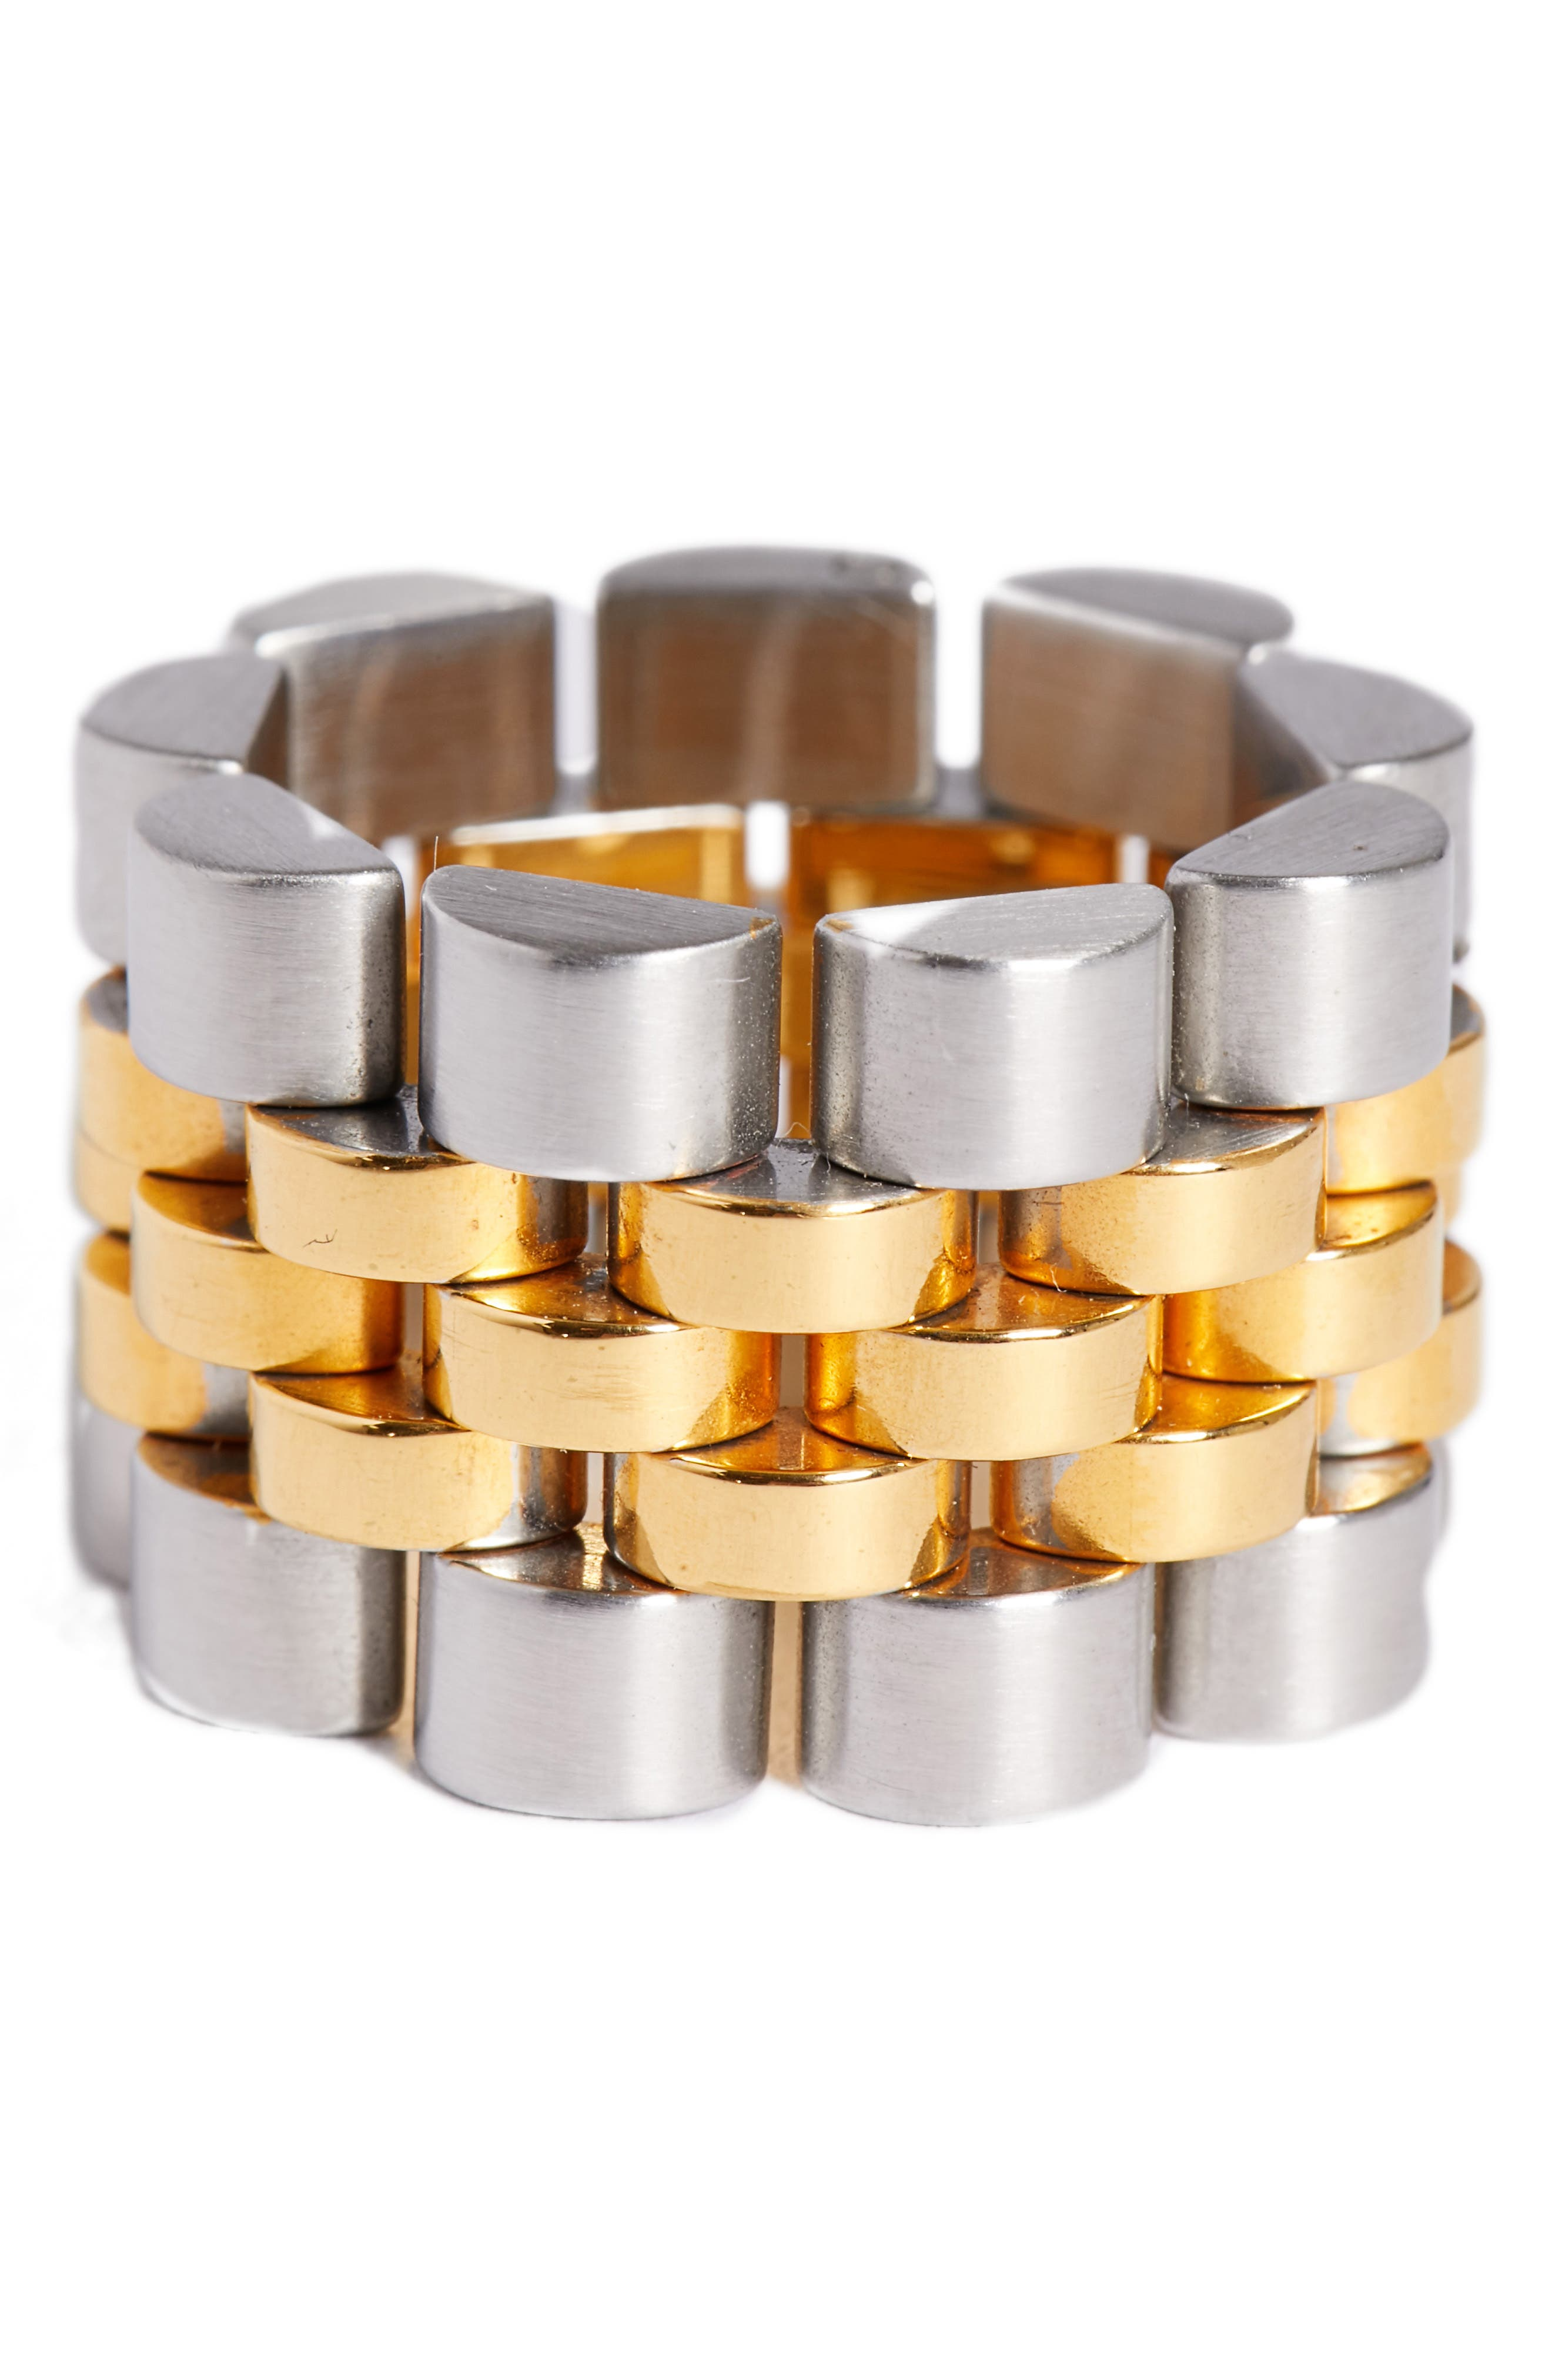 Watch Strap Ring,                             Alternate thumbnail 2, color,                             Gold